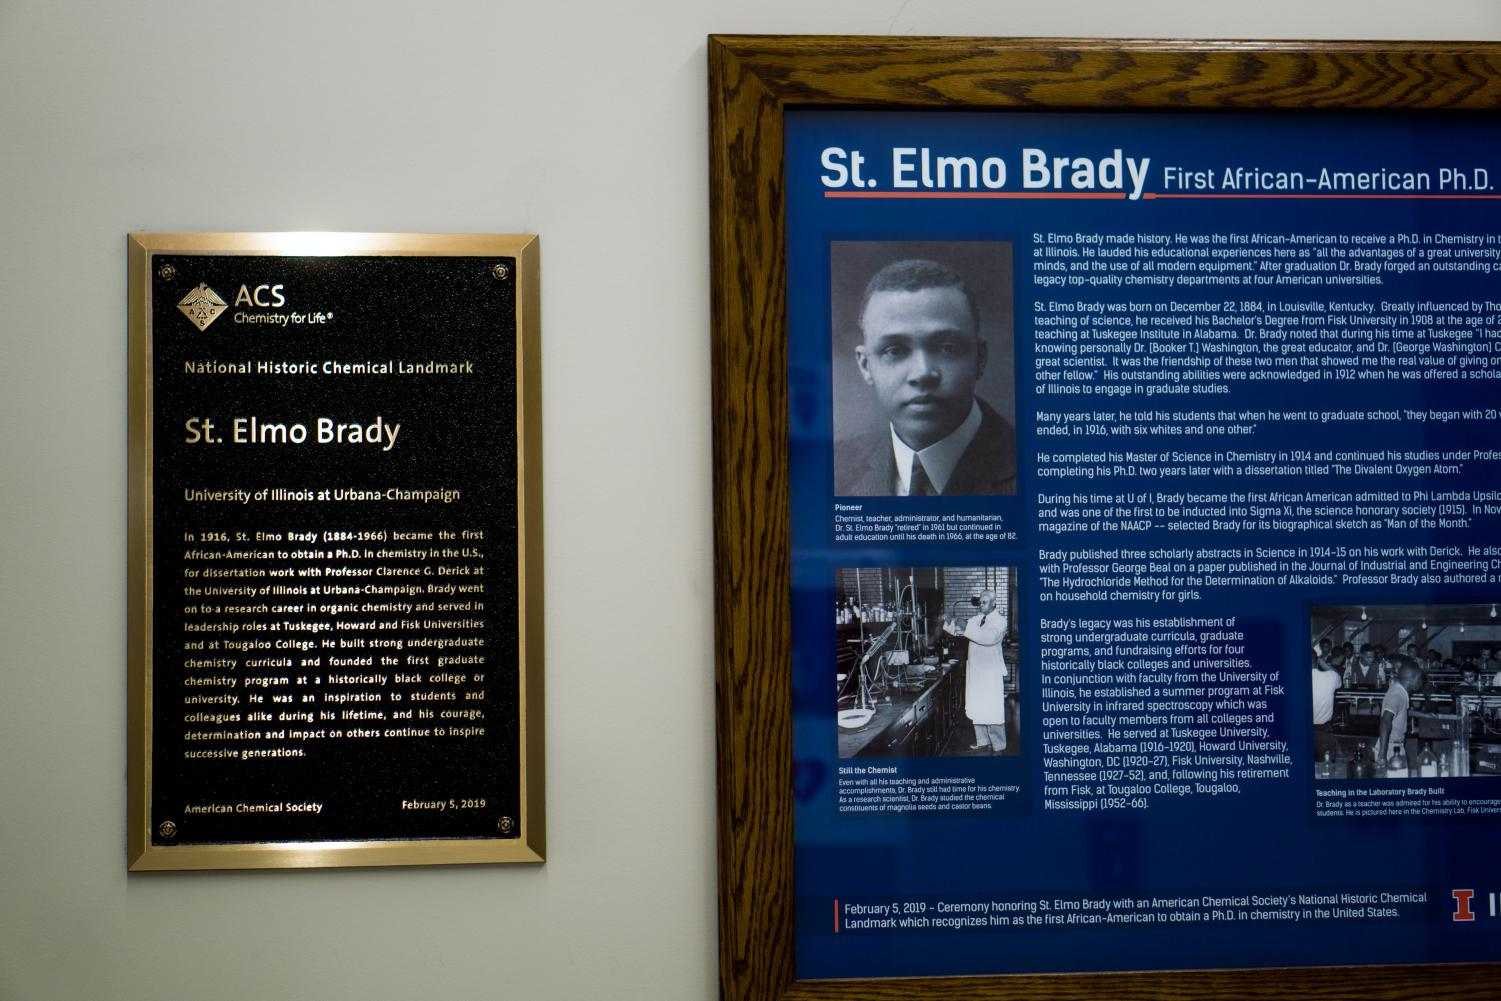 A bronze plaque dedicated to St. Elmo Brady in Noyes Hall on Monday. St. Elmo Brady was the first black student to receive a doctoral degree in Chemistry in the U.S.